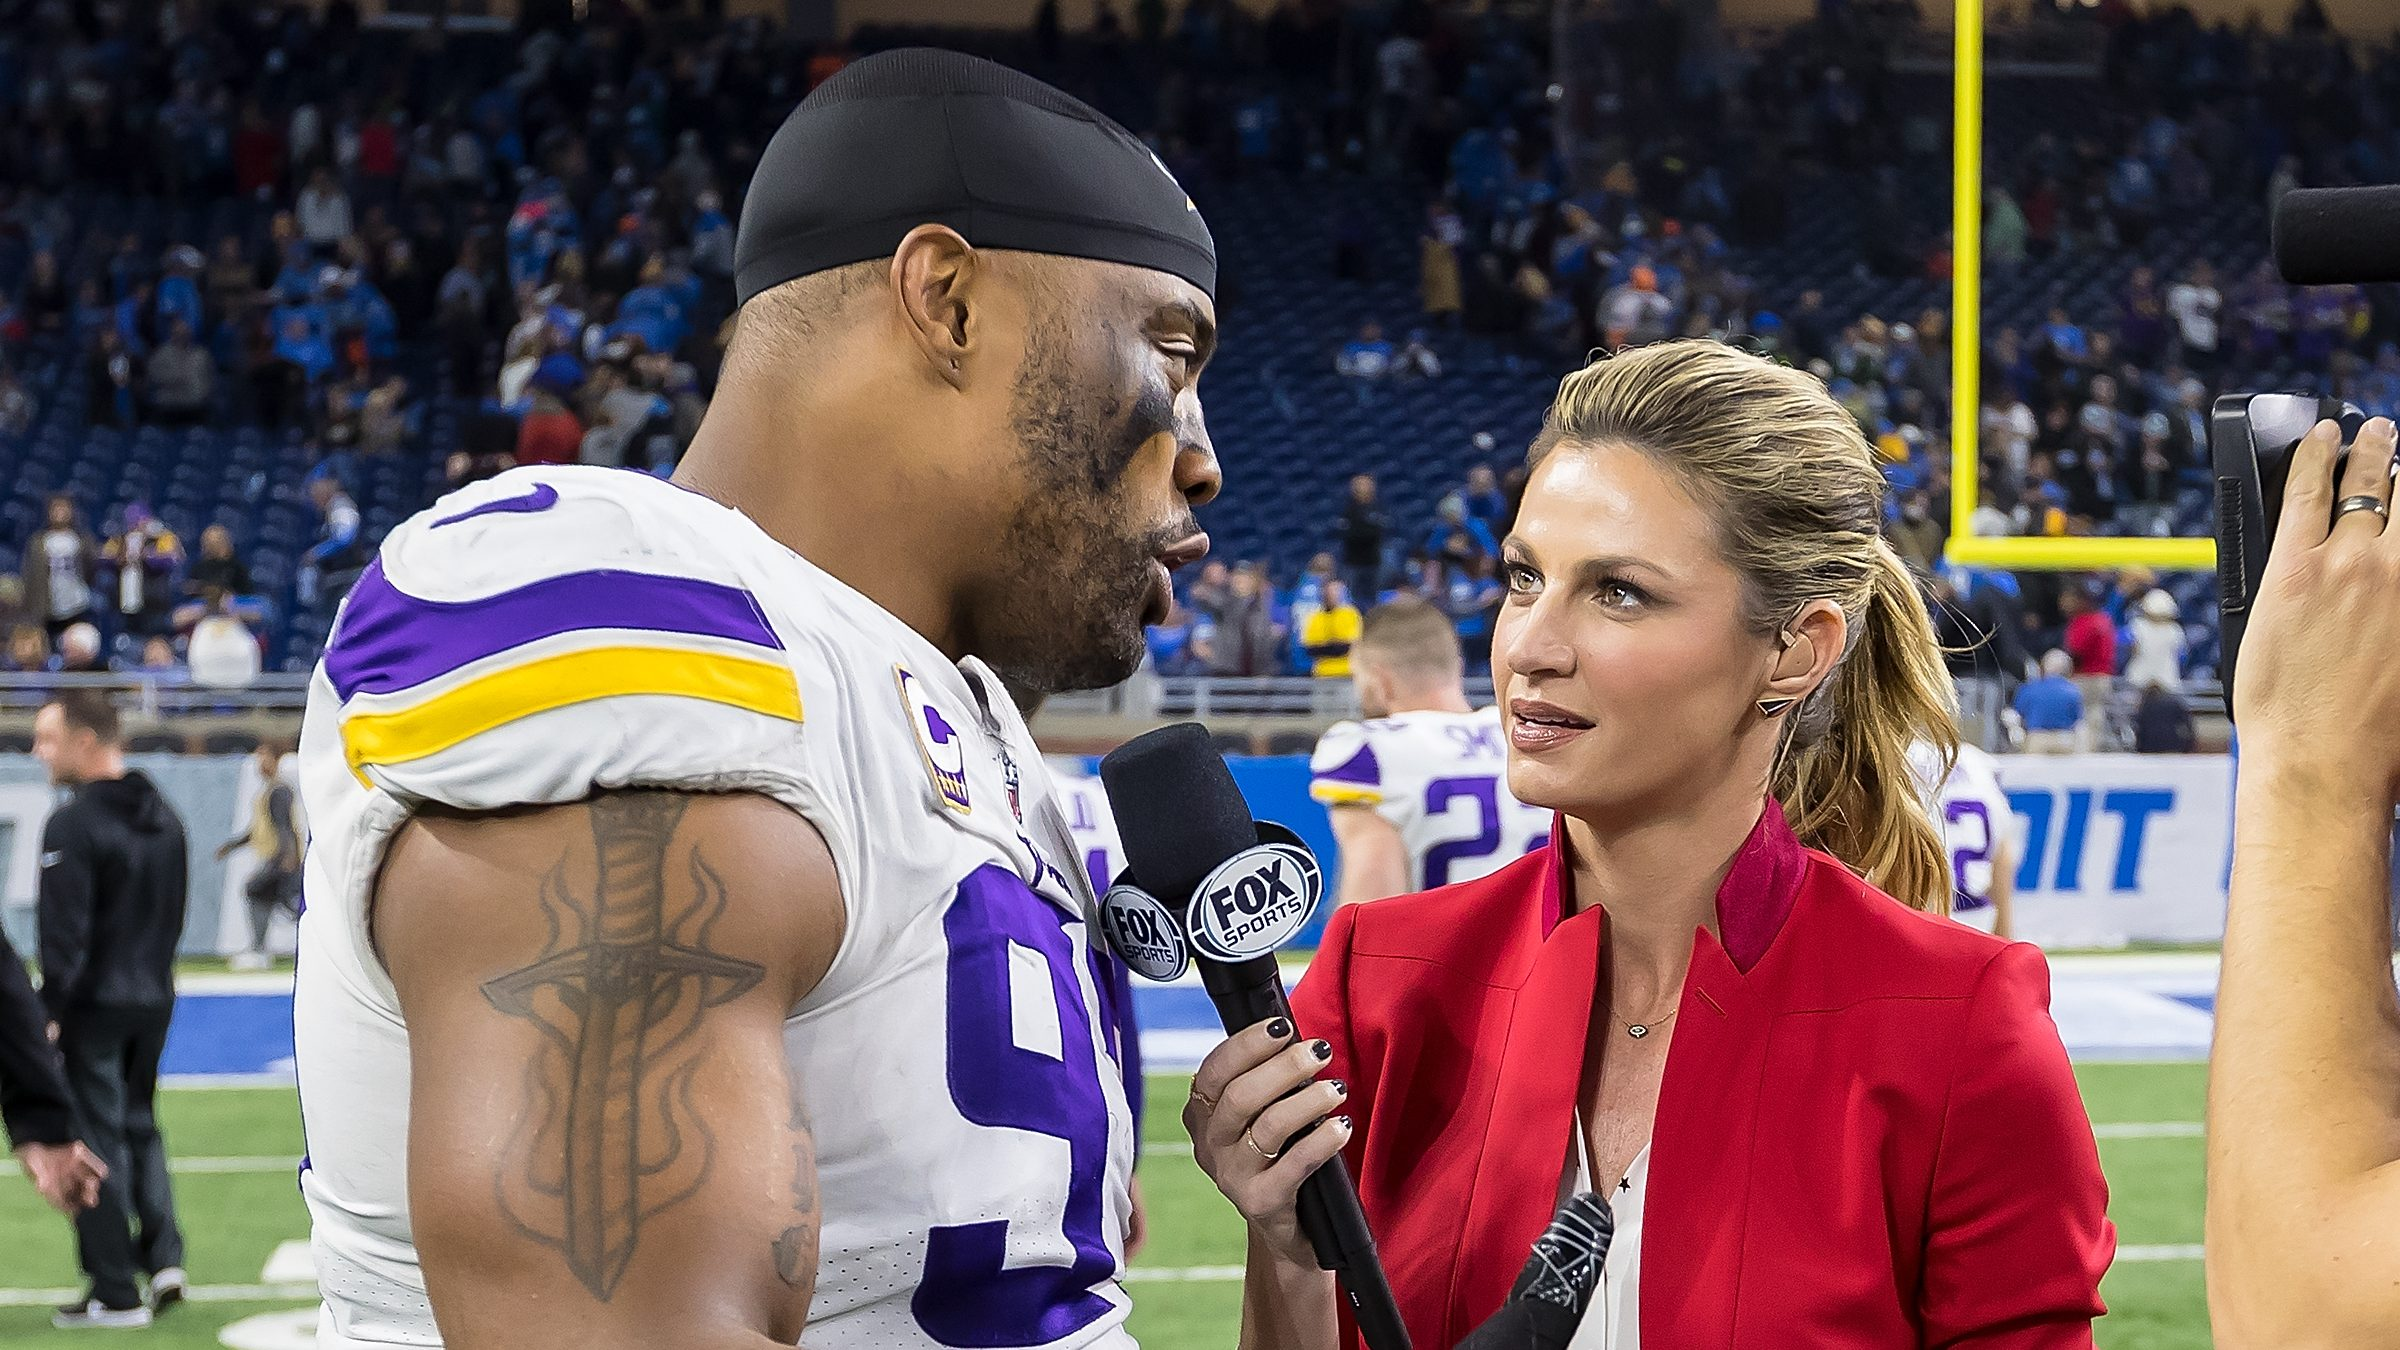 erin-andrews-sports-media-sexism